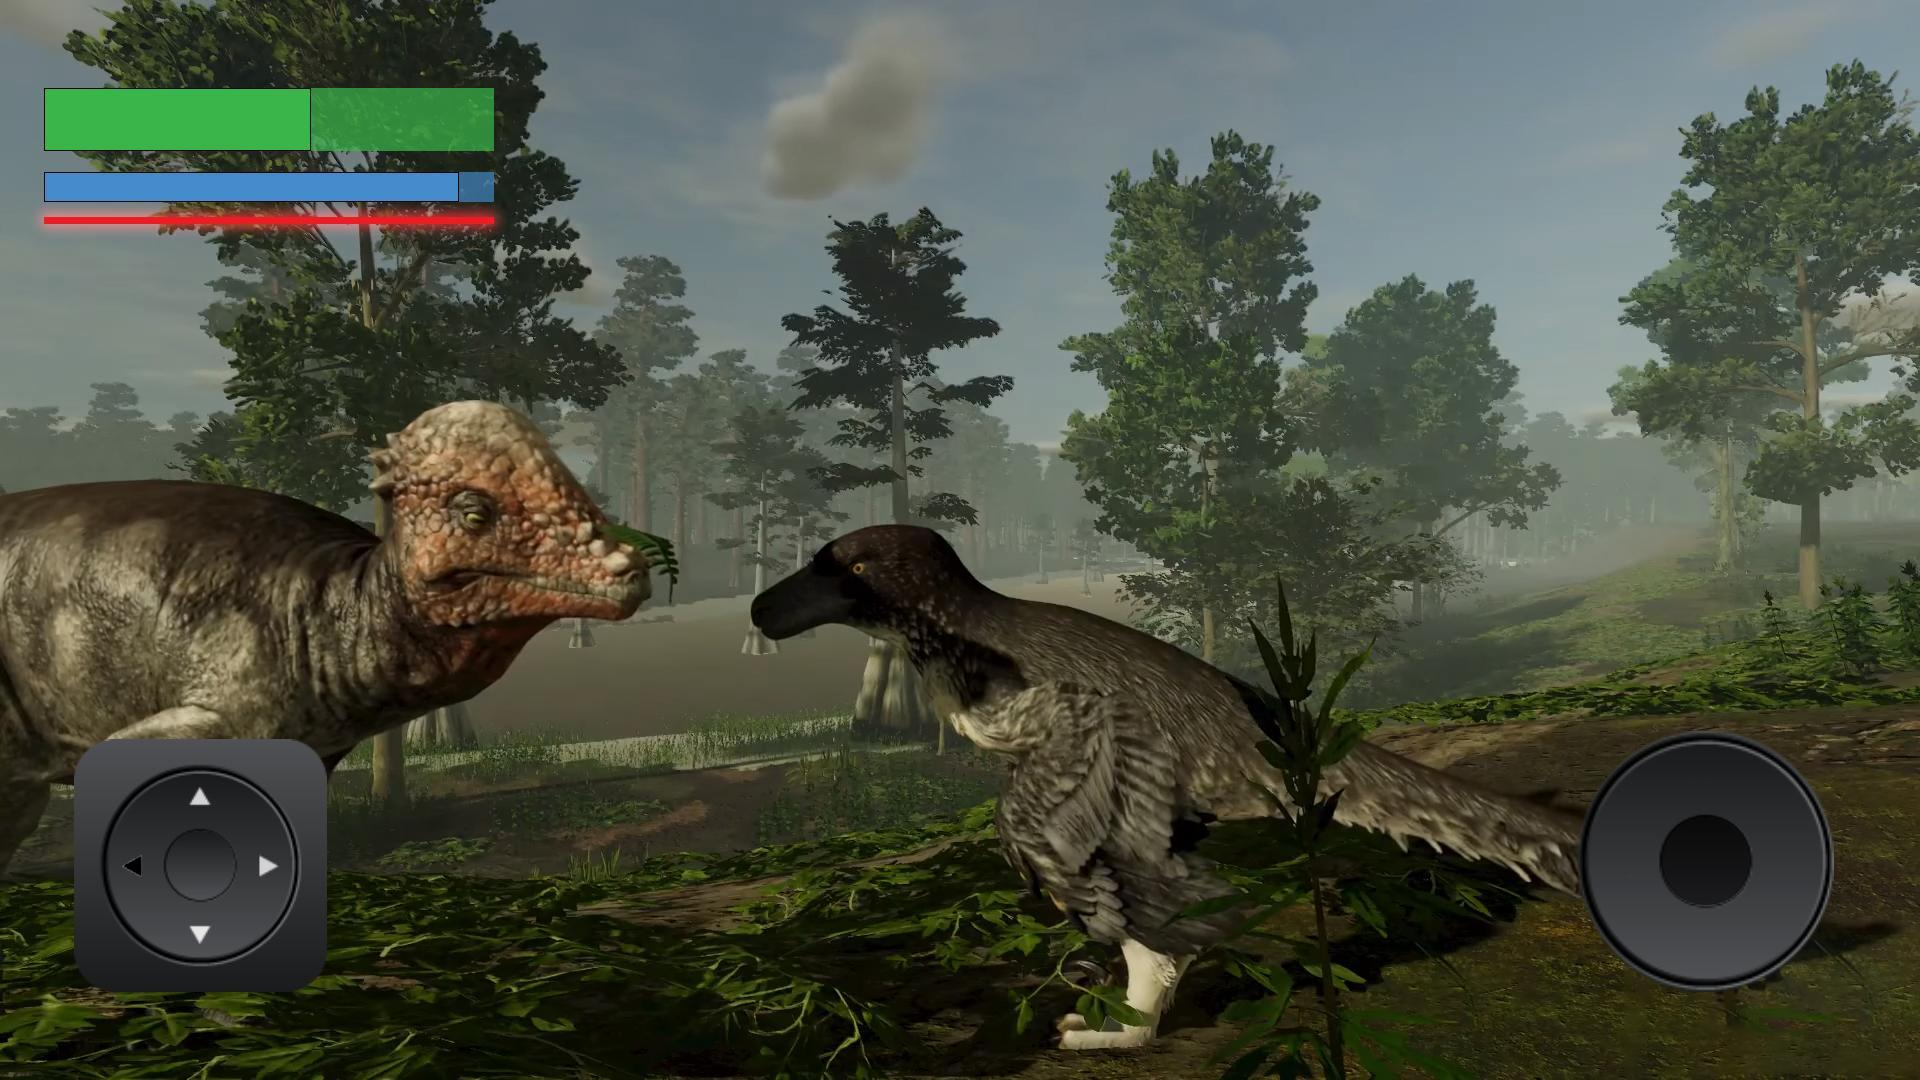 Dinosaur Saurian 3d For Android Apk Download